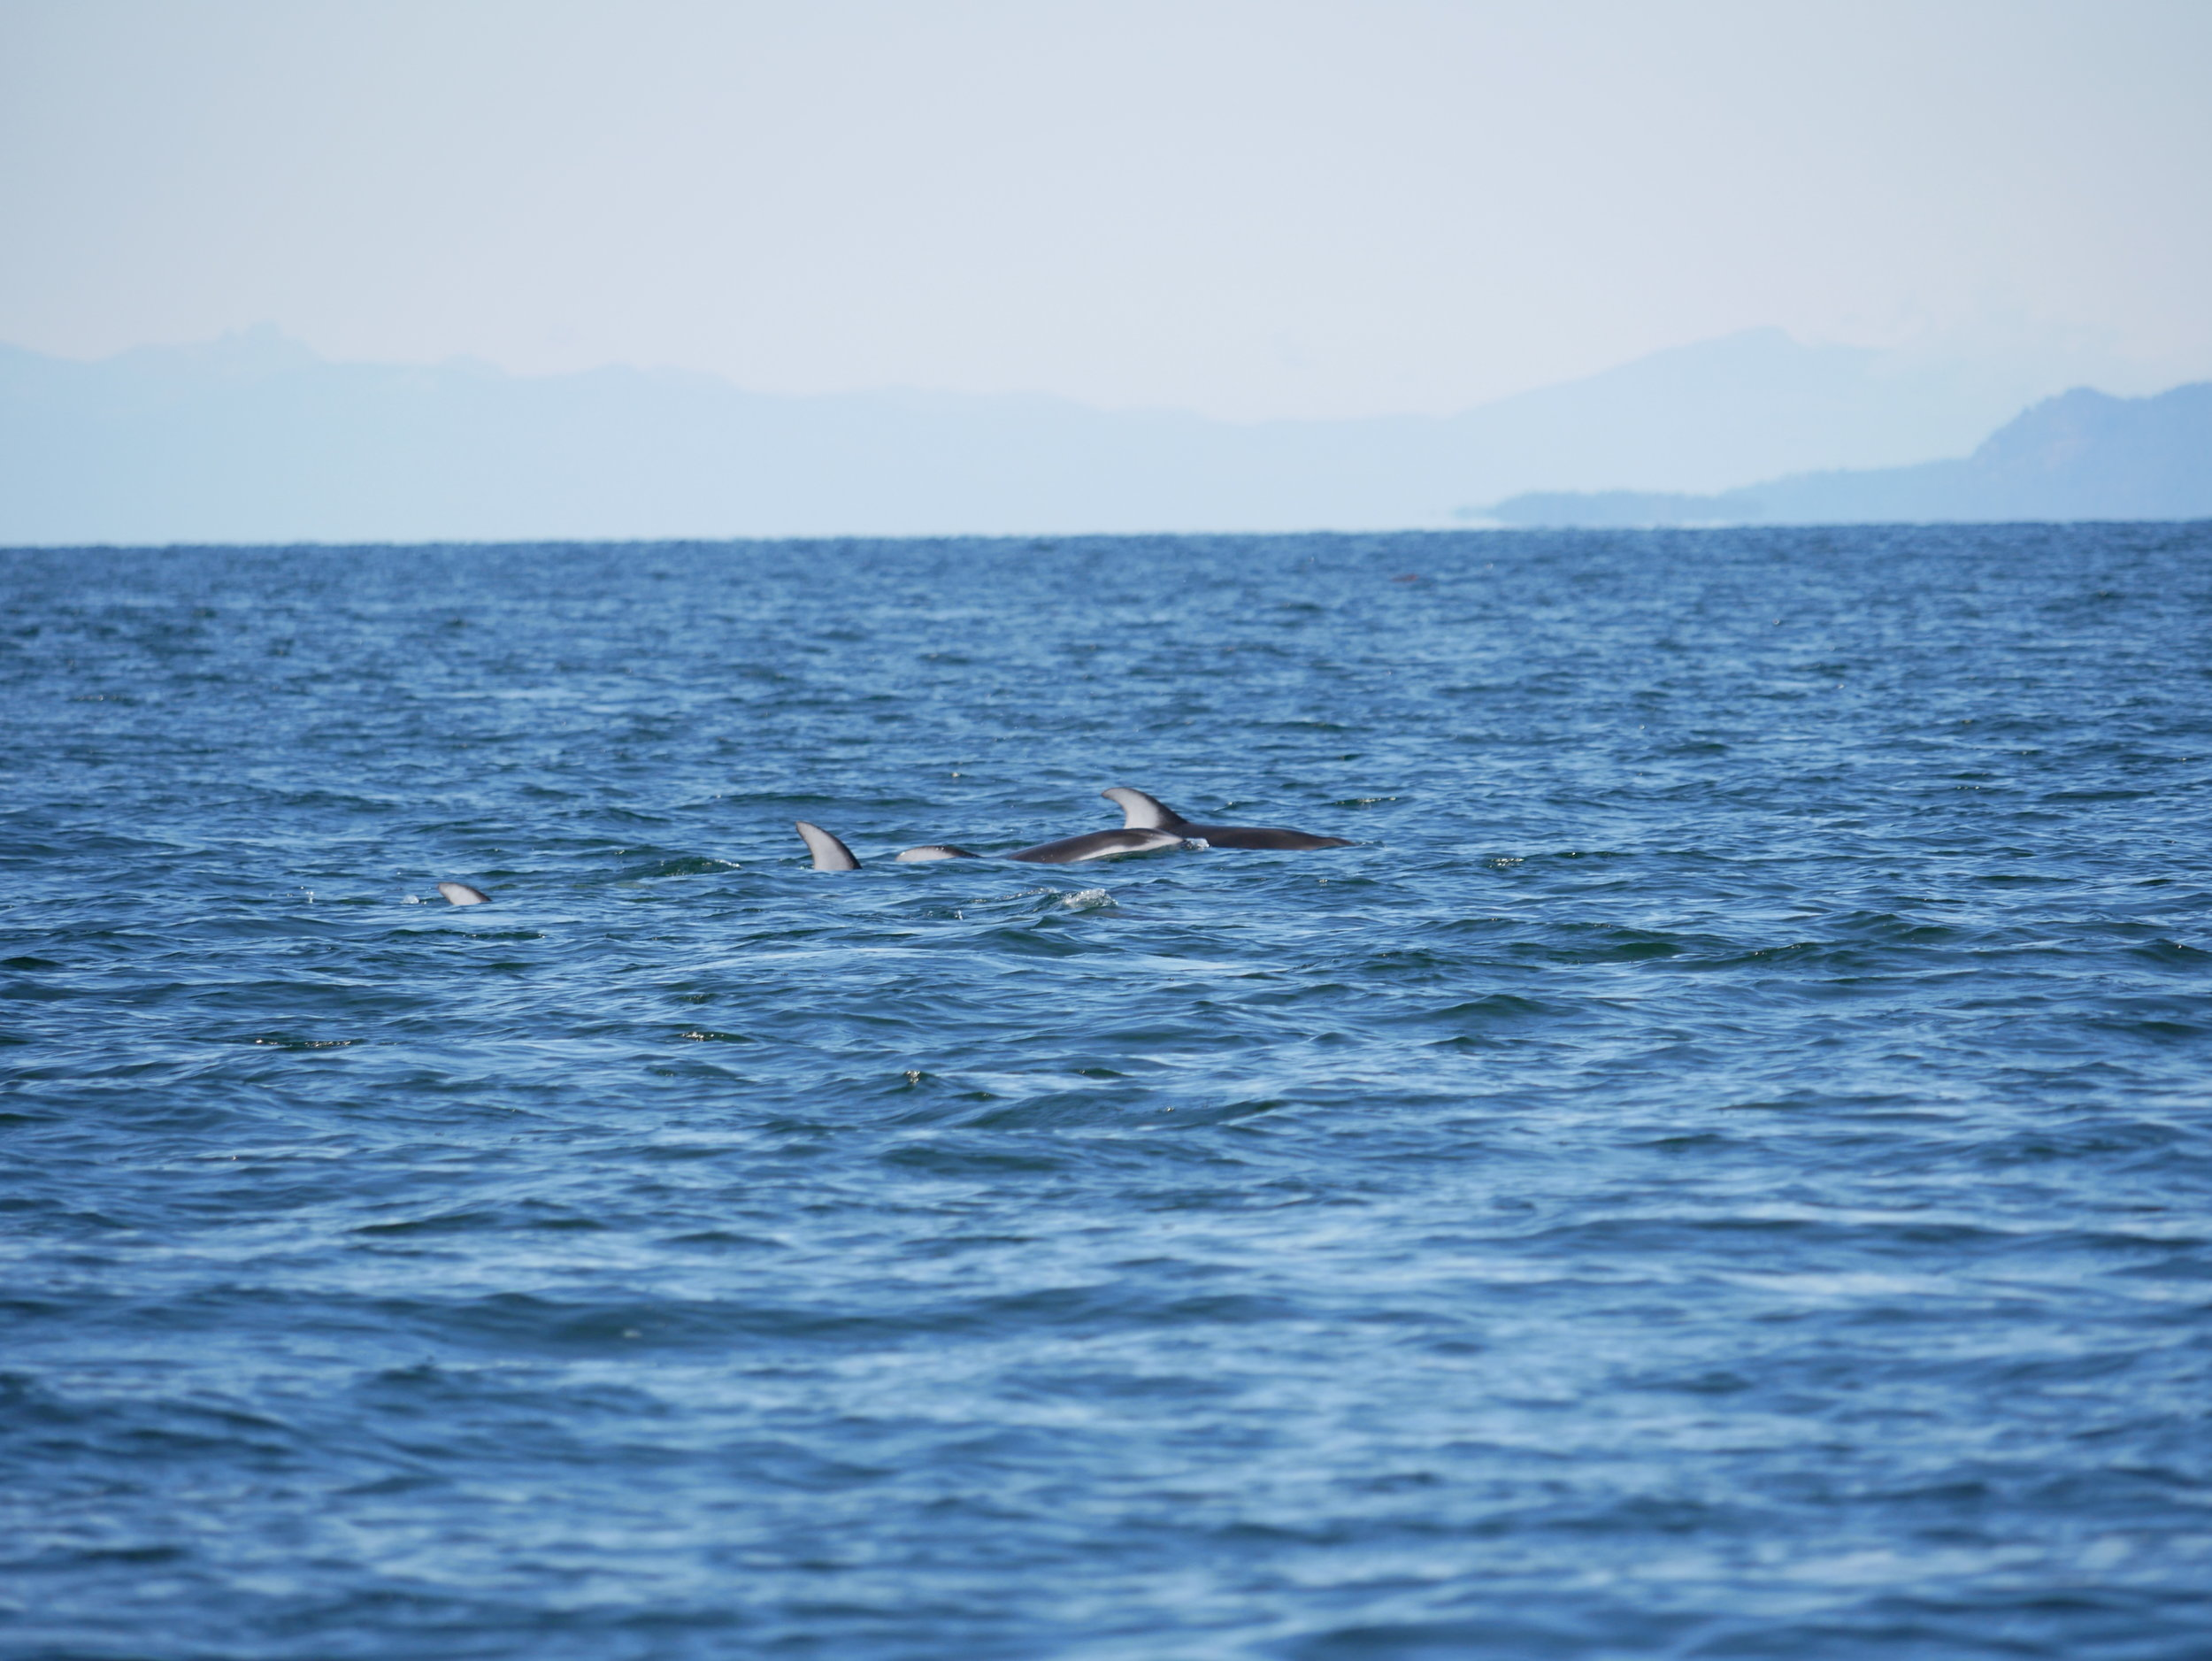 Pacific Whitesided dolphins are an uncommon sighting, what a treat! Photo by Val Watson